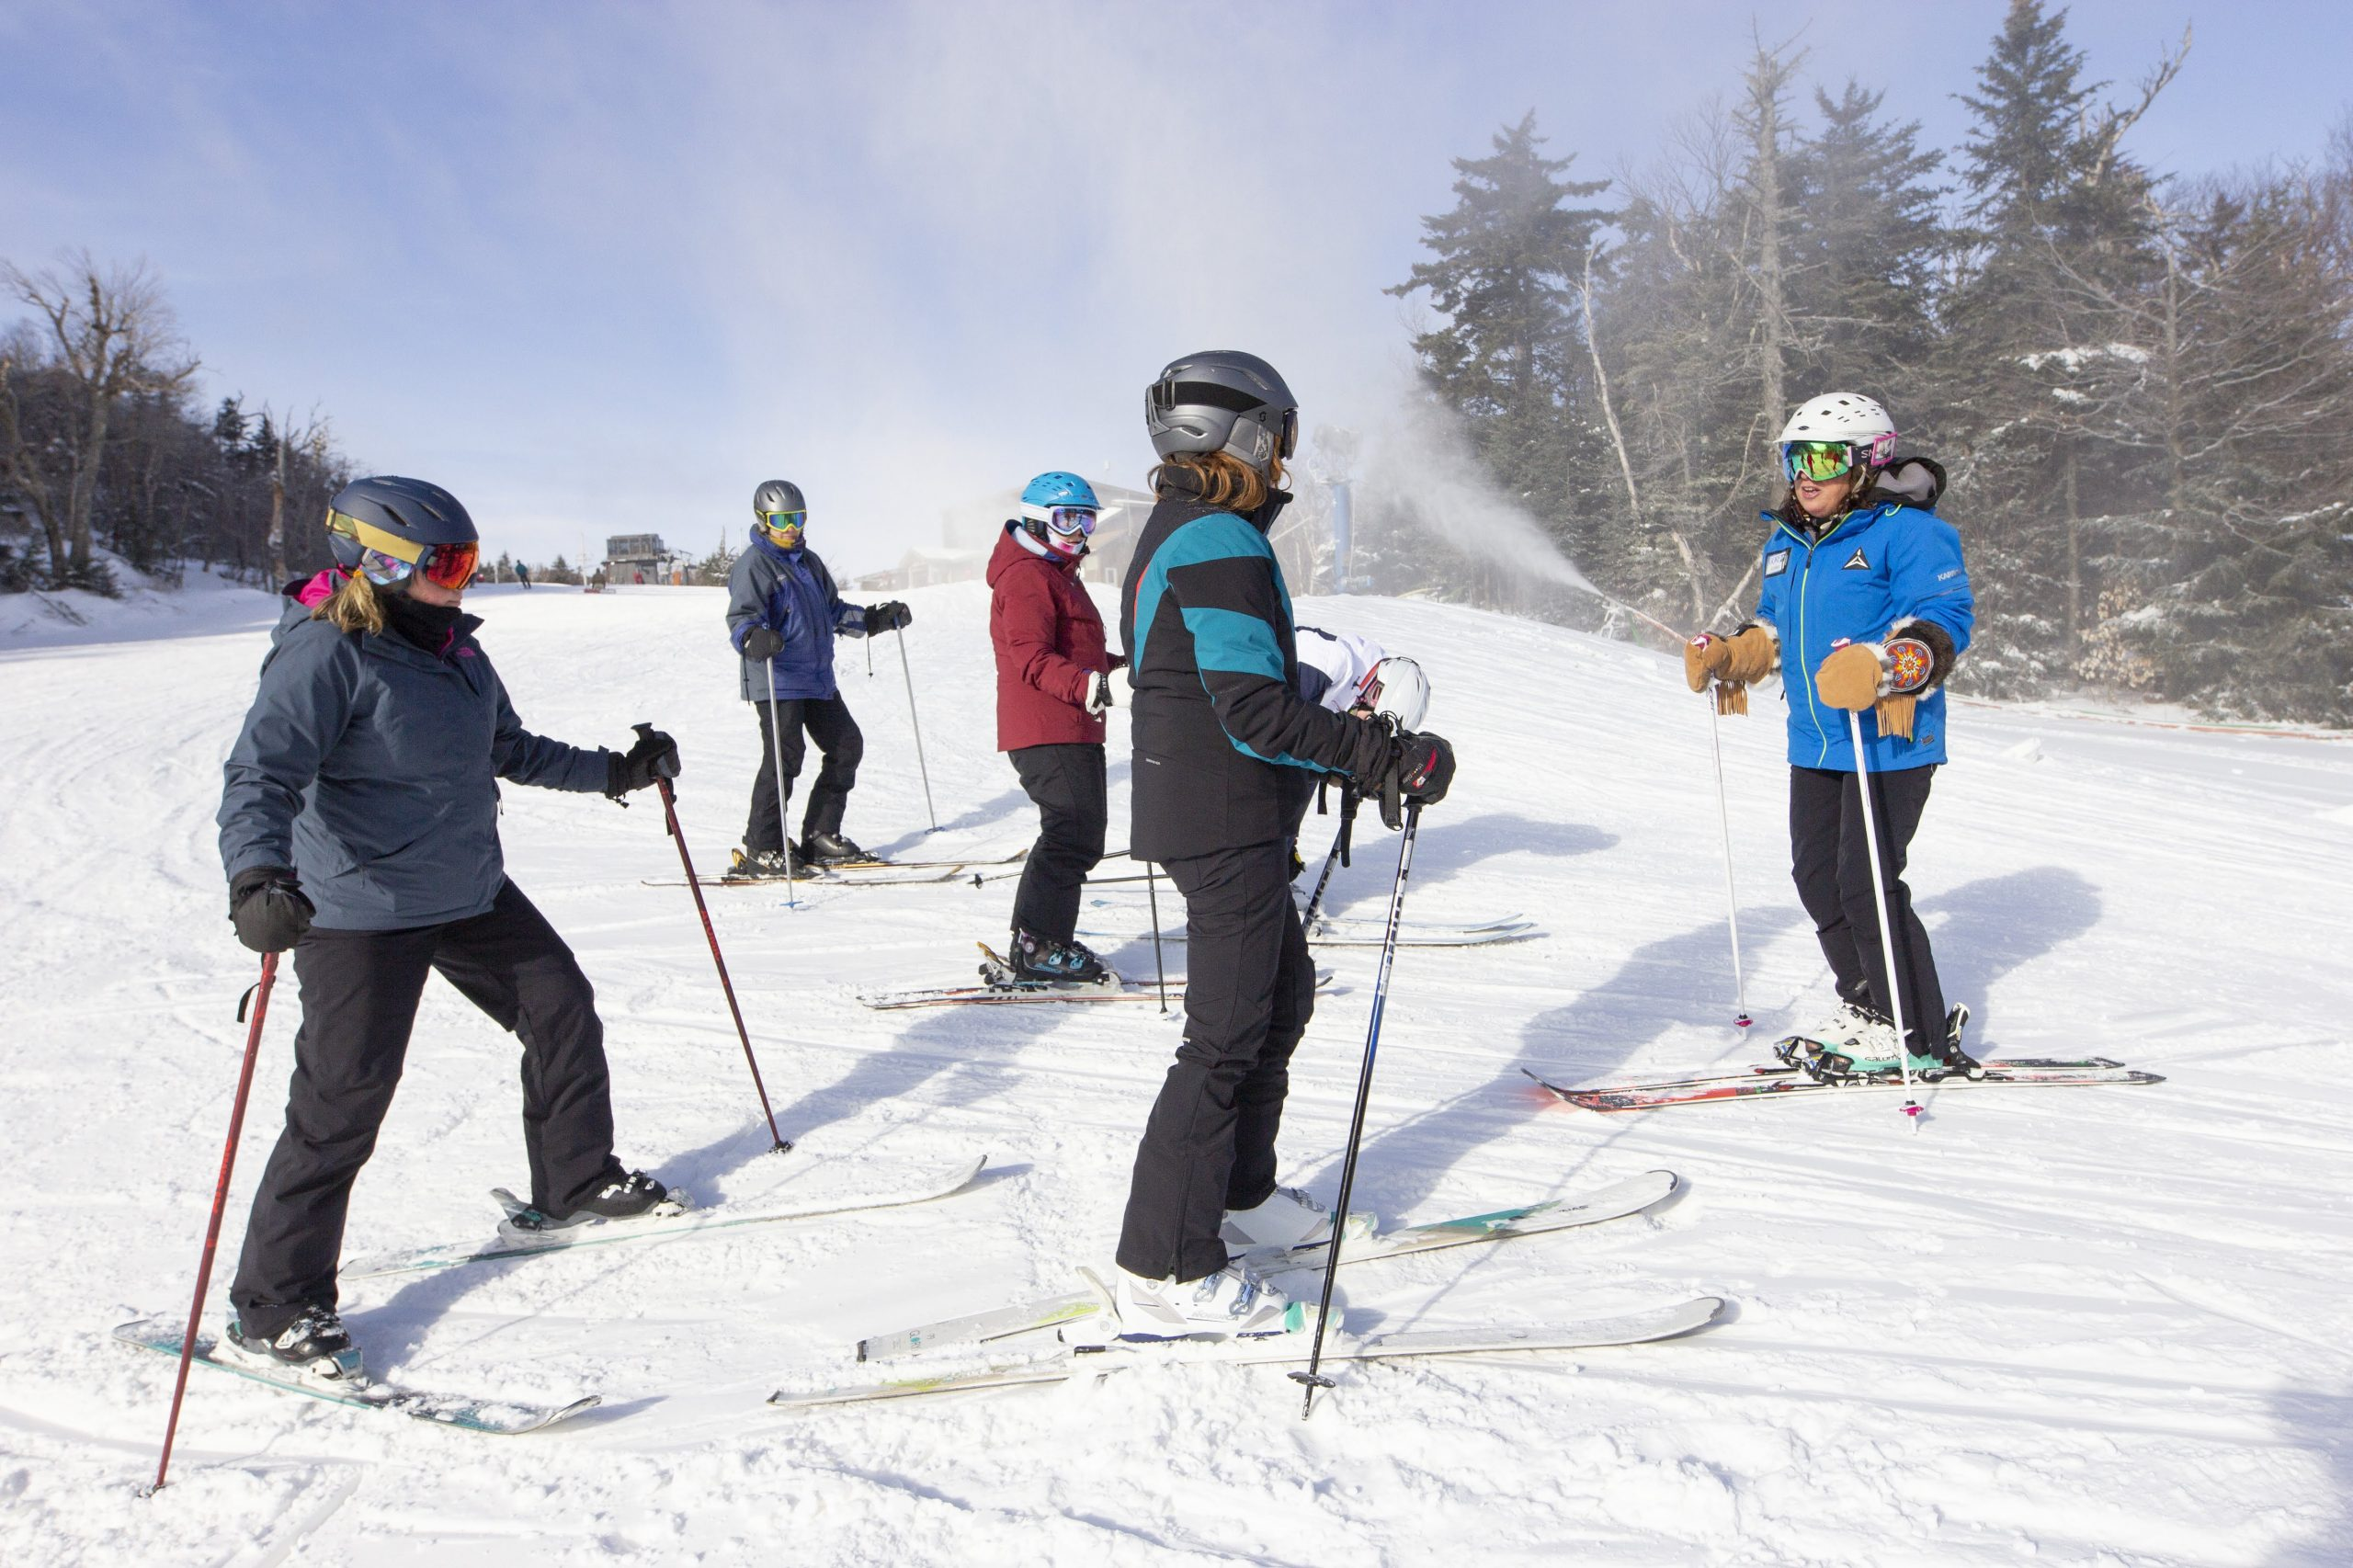 ladies ski lesson with instructor